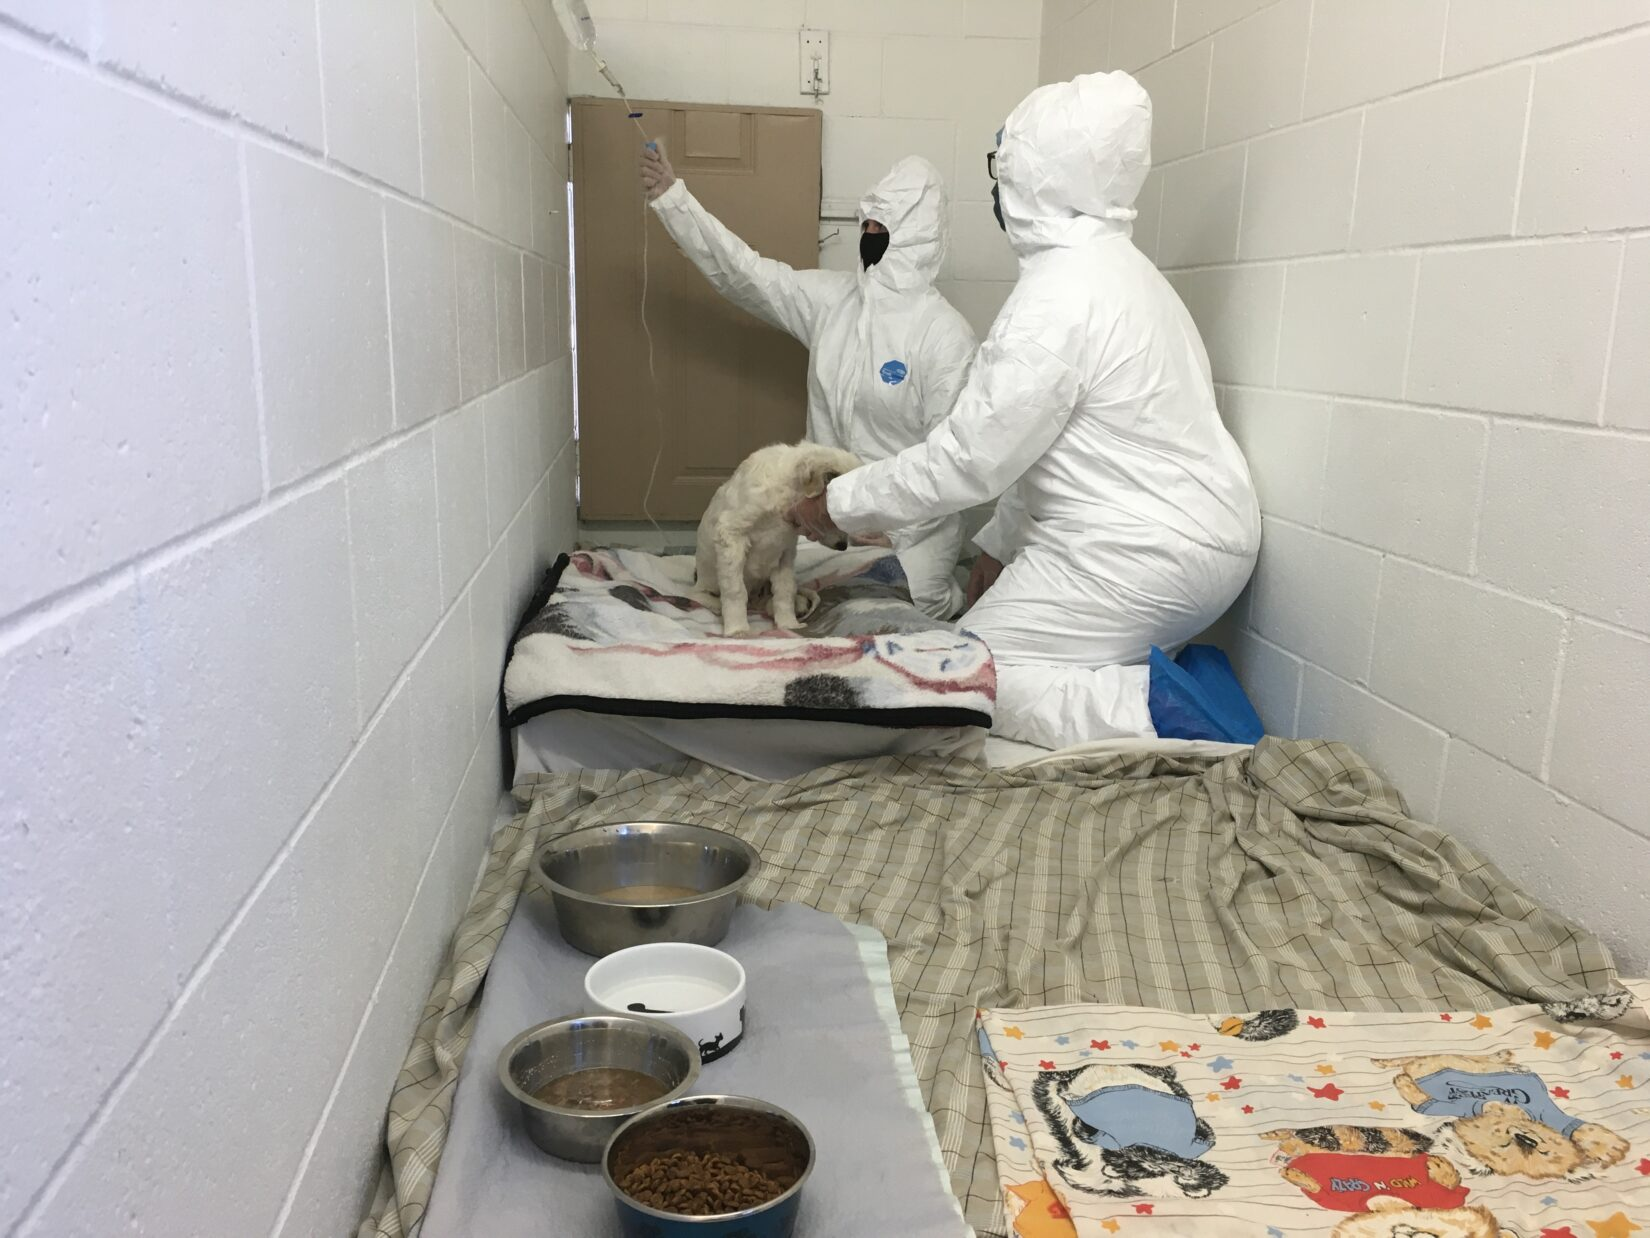 Tyvek suit being worn in kennel with parvo puppy